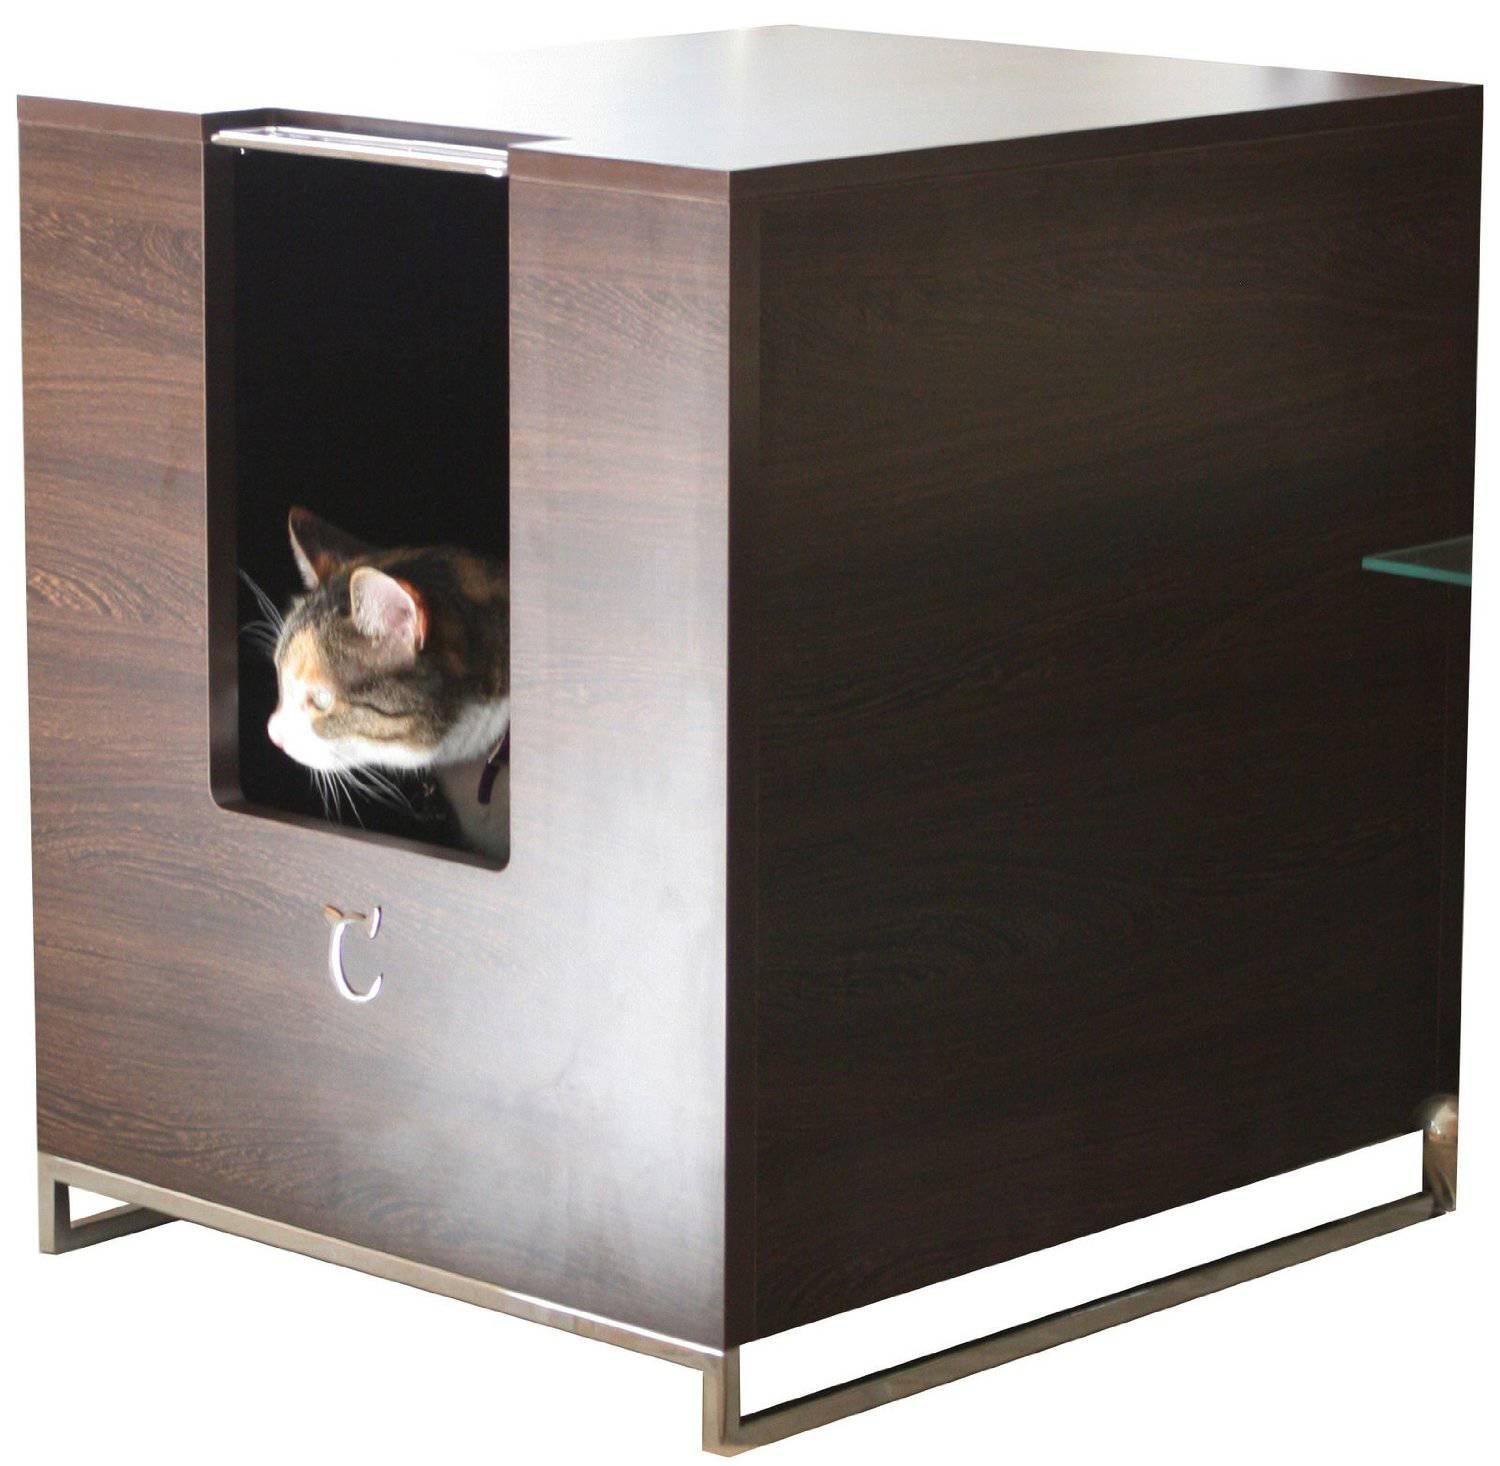 Covered litter boxes pros and cons meow lifestyle - Contemporary cat furniture ideas ...